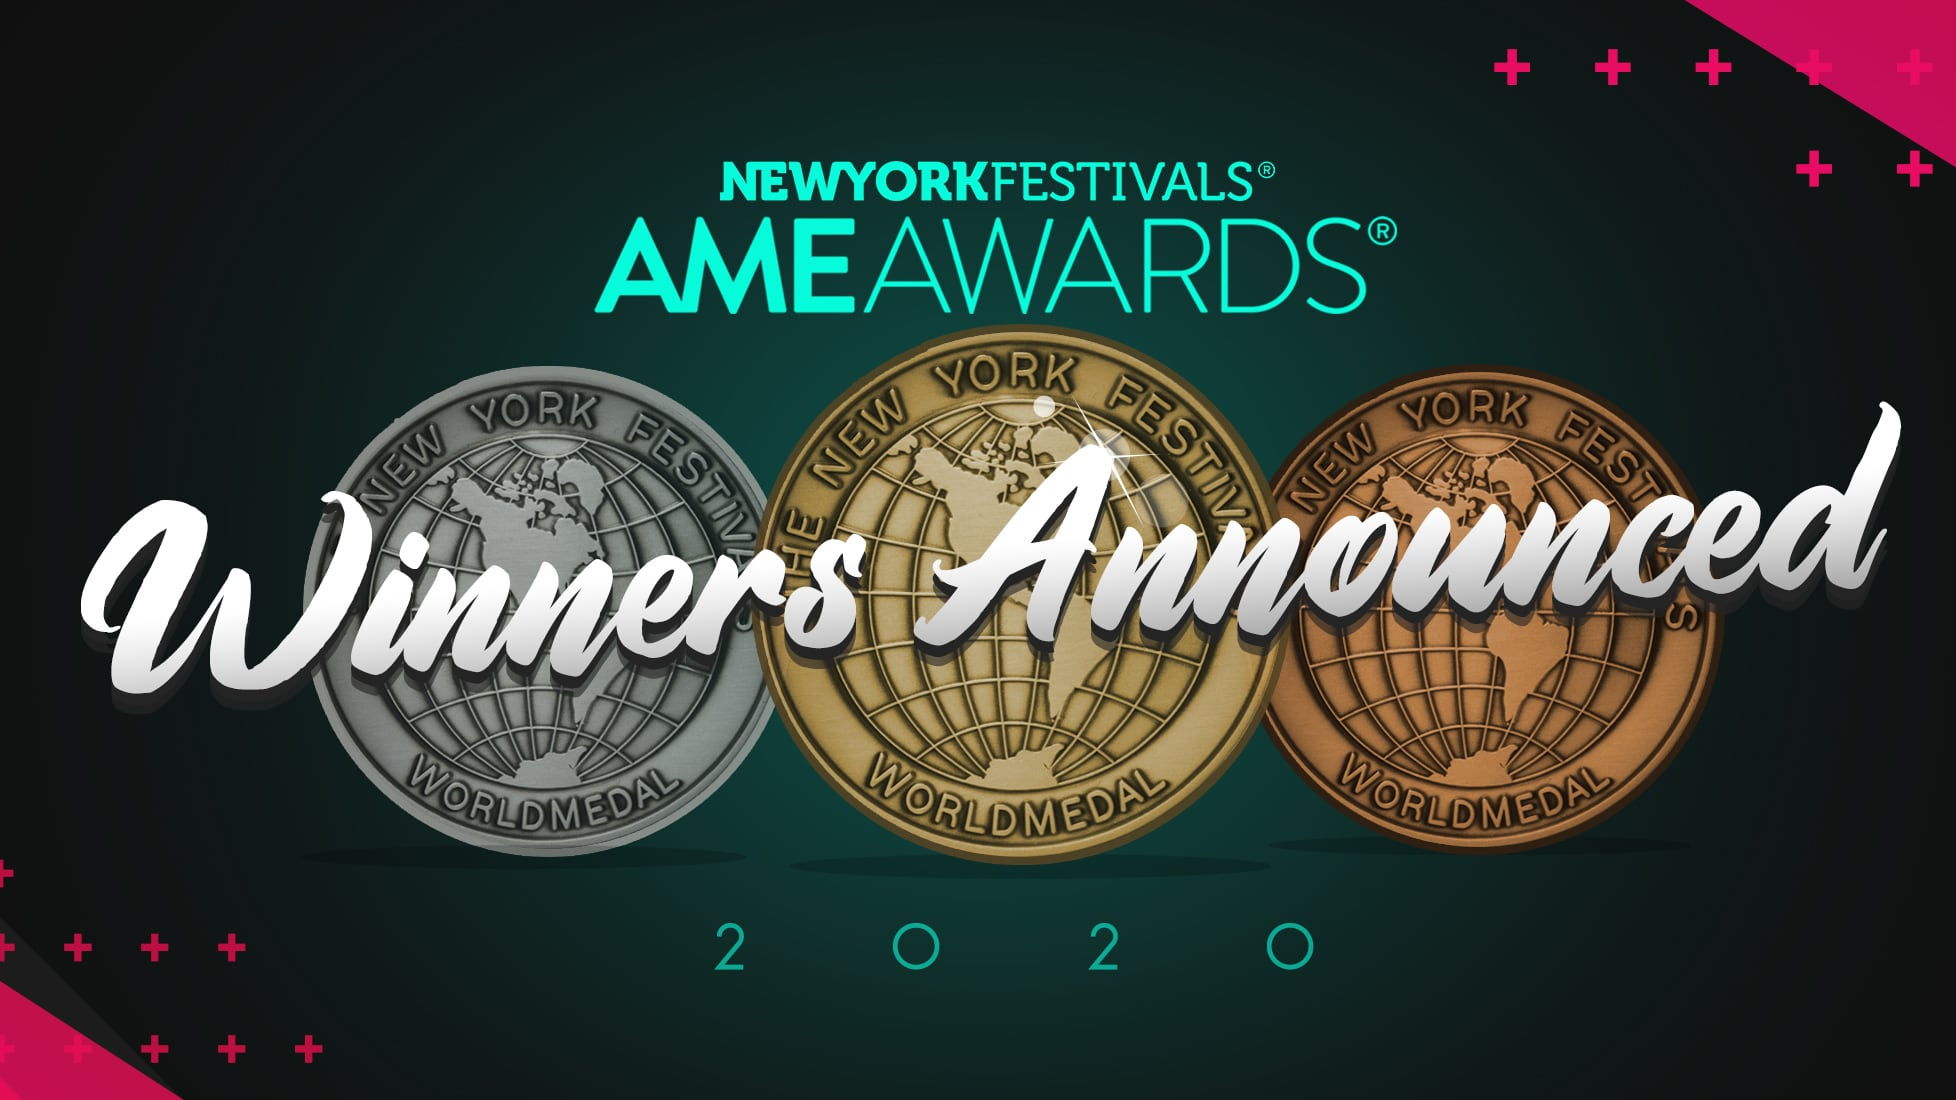 VMLY&R Sydney awarded Gold at NY Festivals 2020 AME Awards; AFFINITY scores four Silver Awards